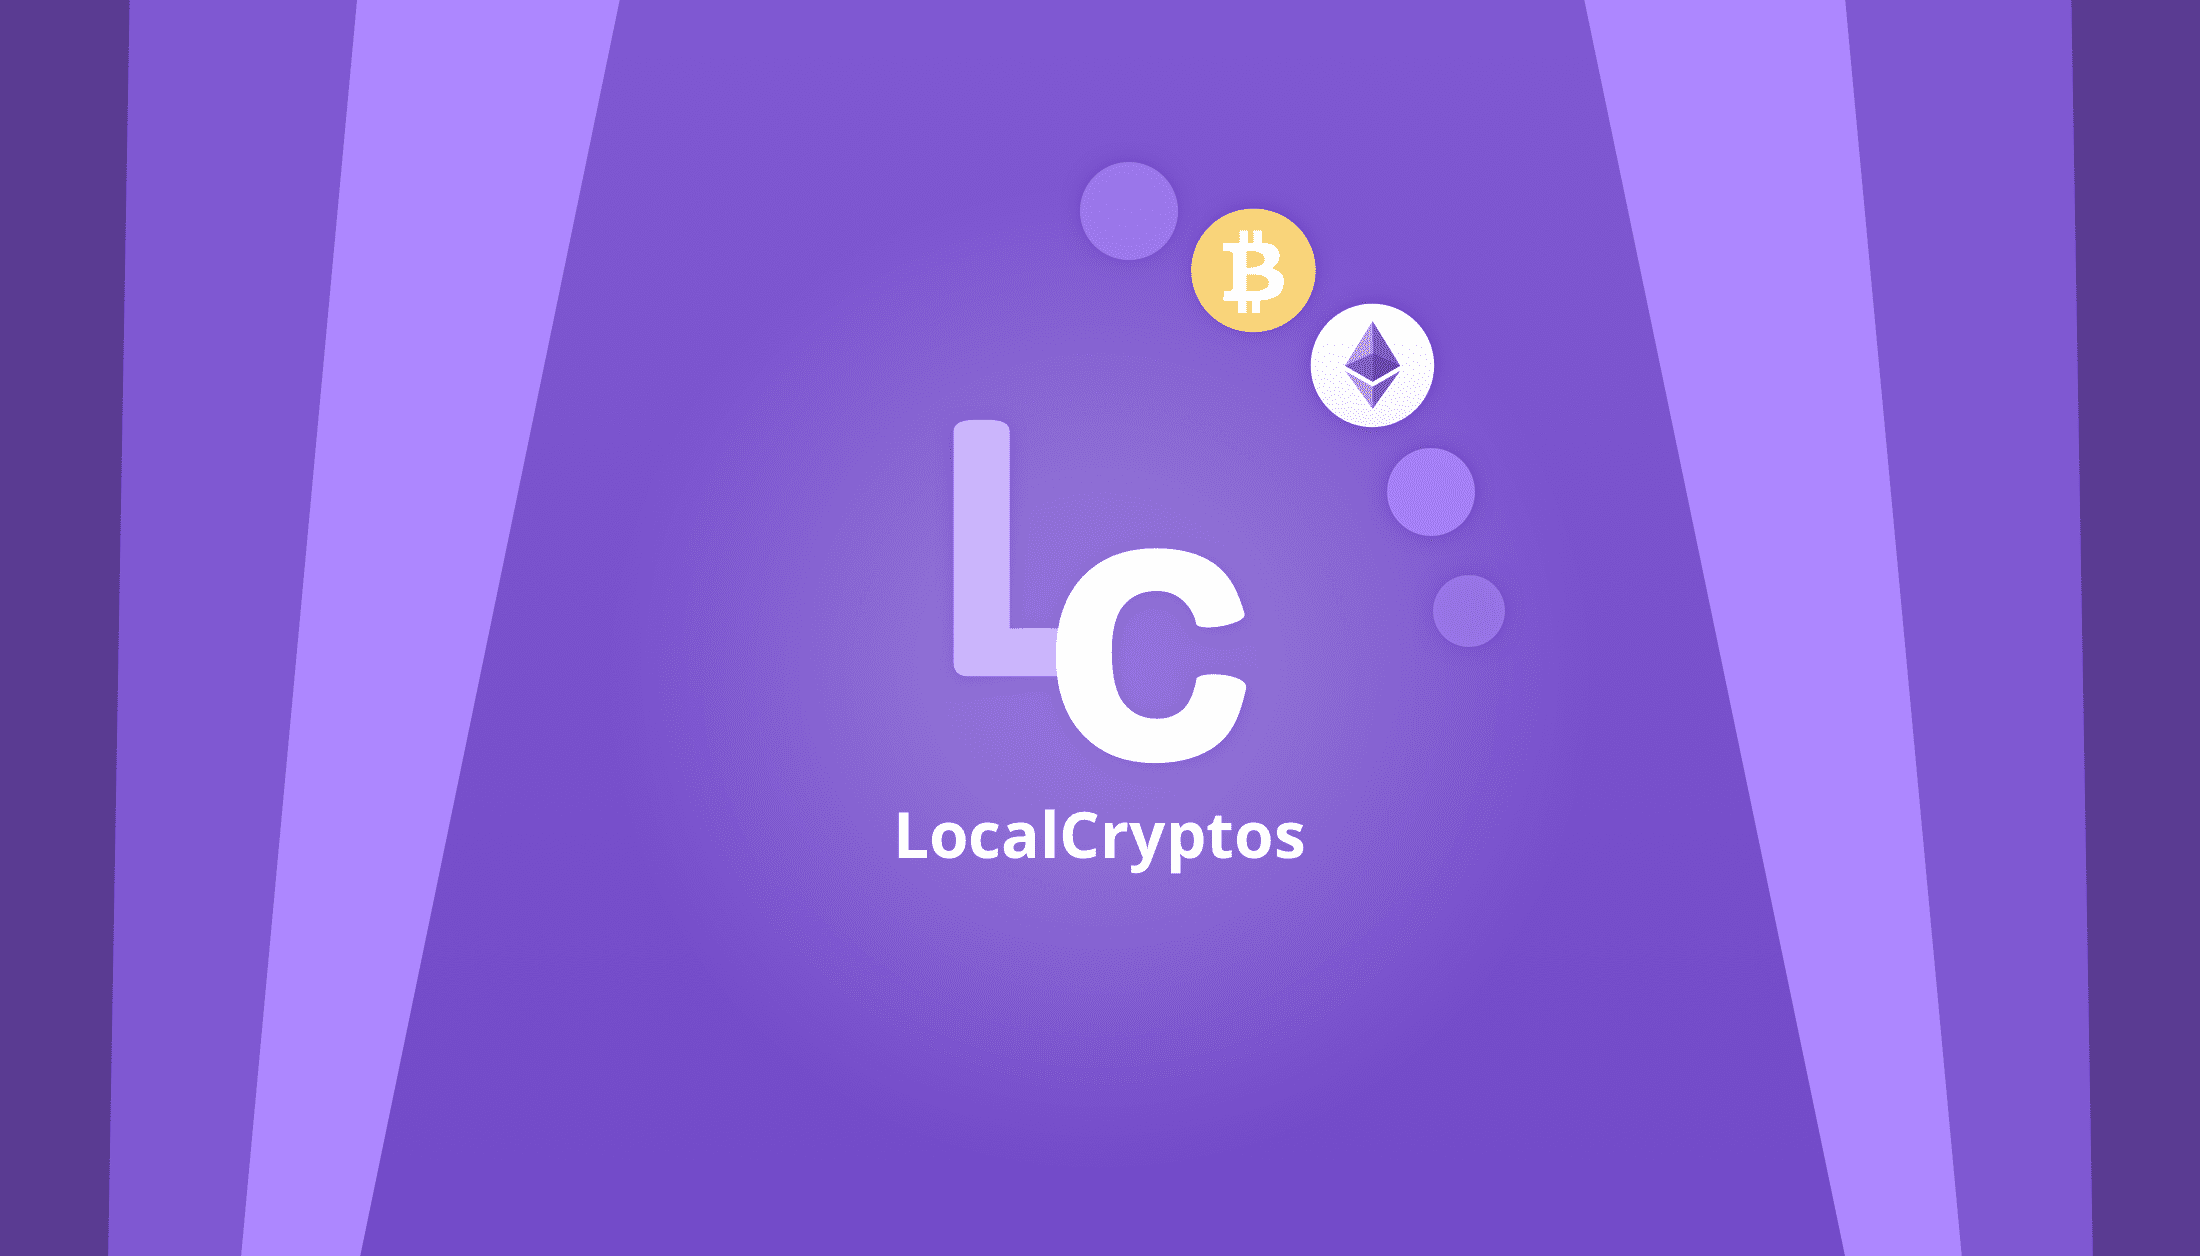 LocalEthereum is a peer-to-peer Ethereum marketplace with 100,000+ users in 130 countries. Sign up today to buy or sell ETH with any payment method.